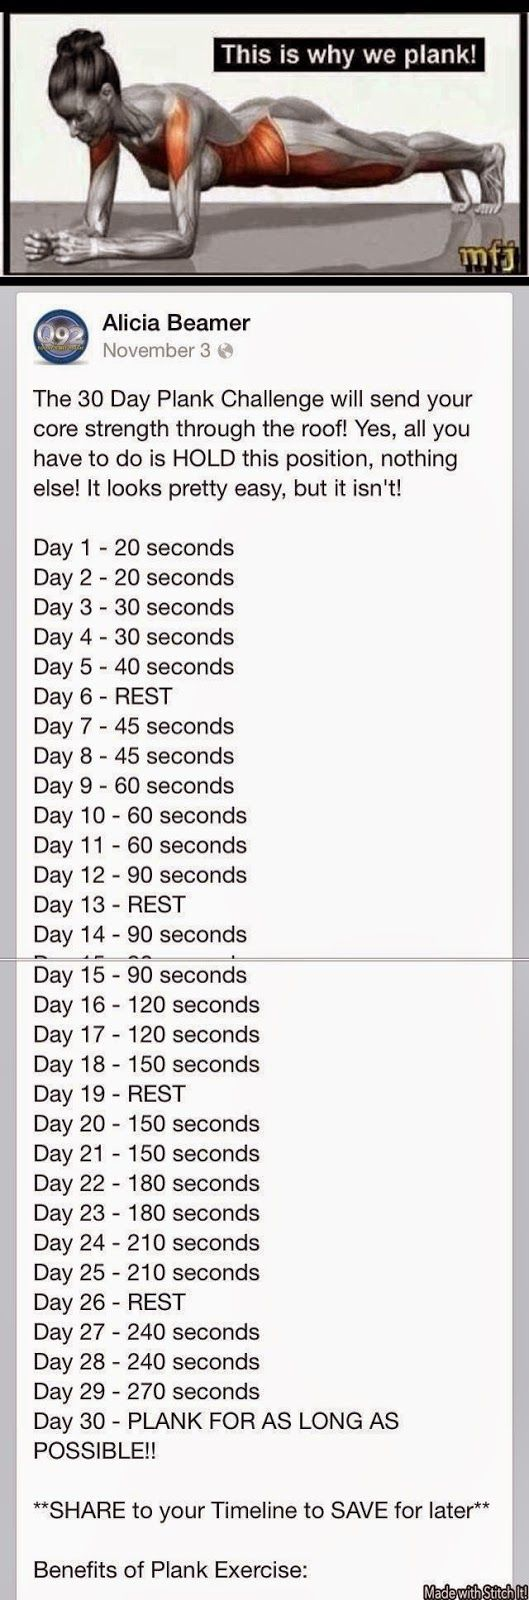 This is why we plank! 30 day challenge.